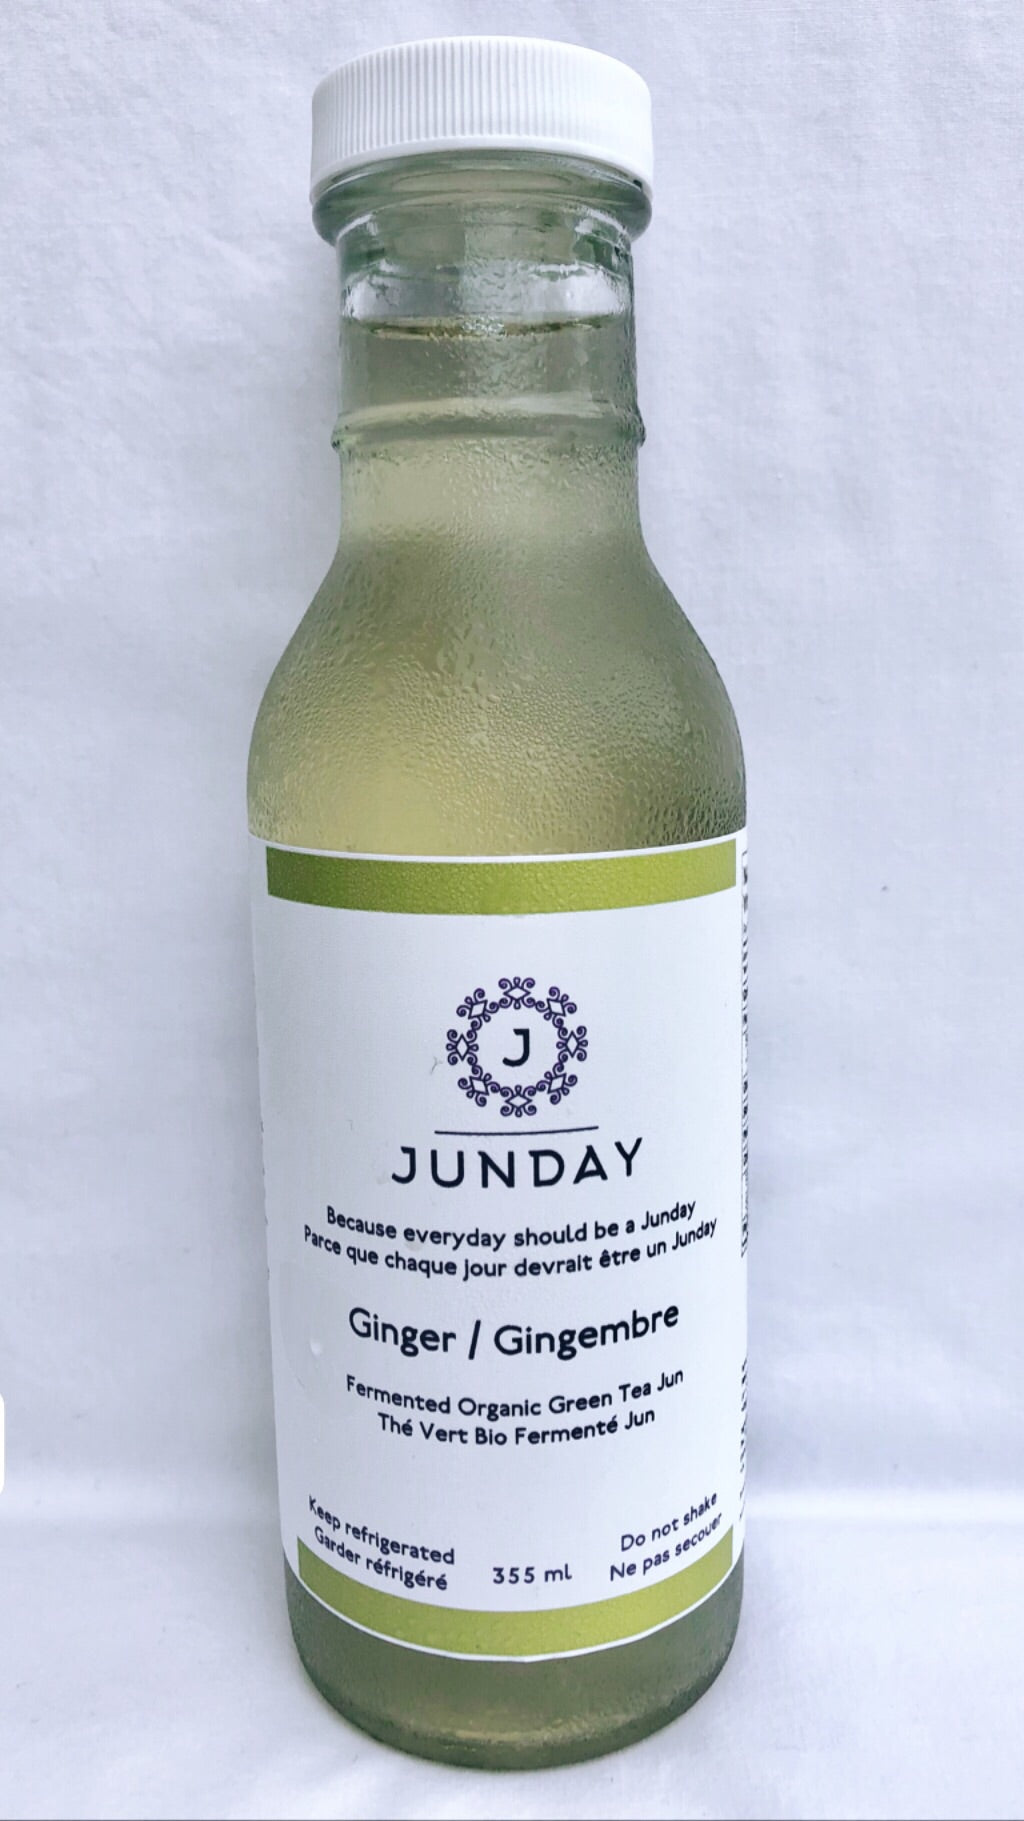 Ginger Jun